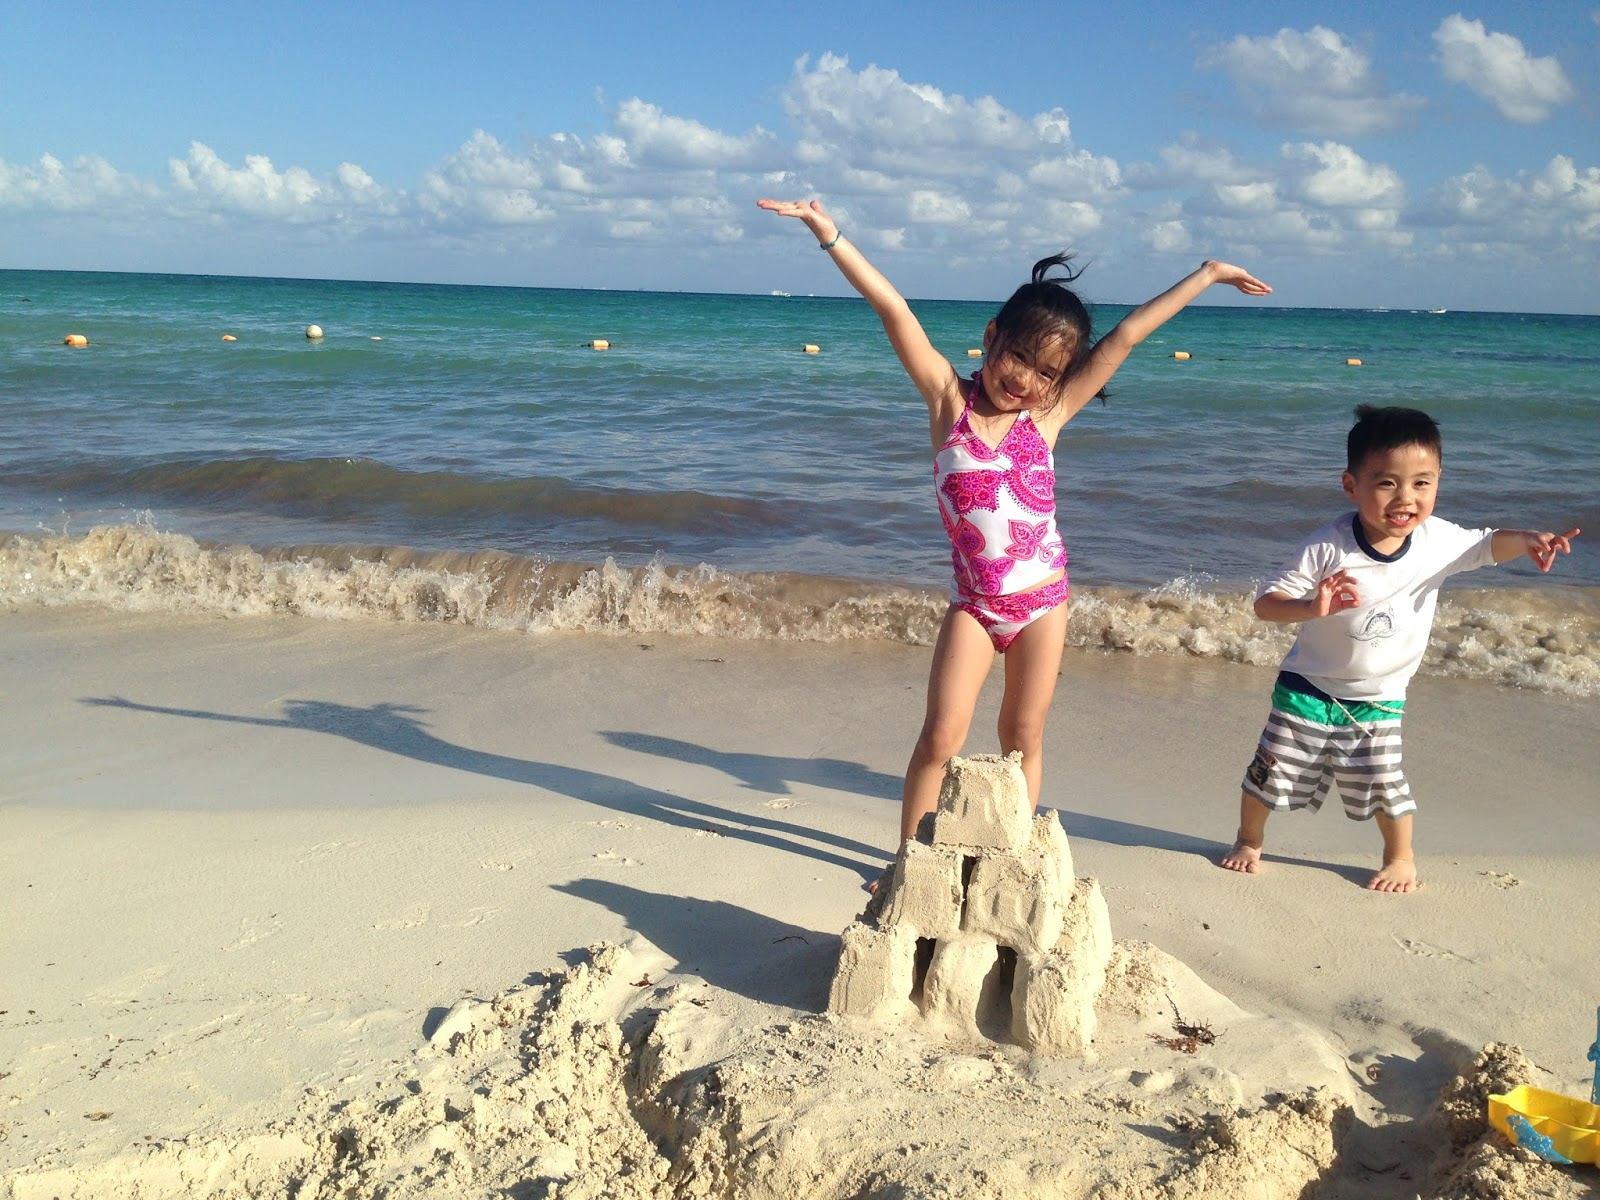 Playa Del Carmen Is The More Family Friendly Destination With Larger And Newer Resorts That Feature Fantastic Kids Programs Cancun Has Nicer Beaches